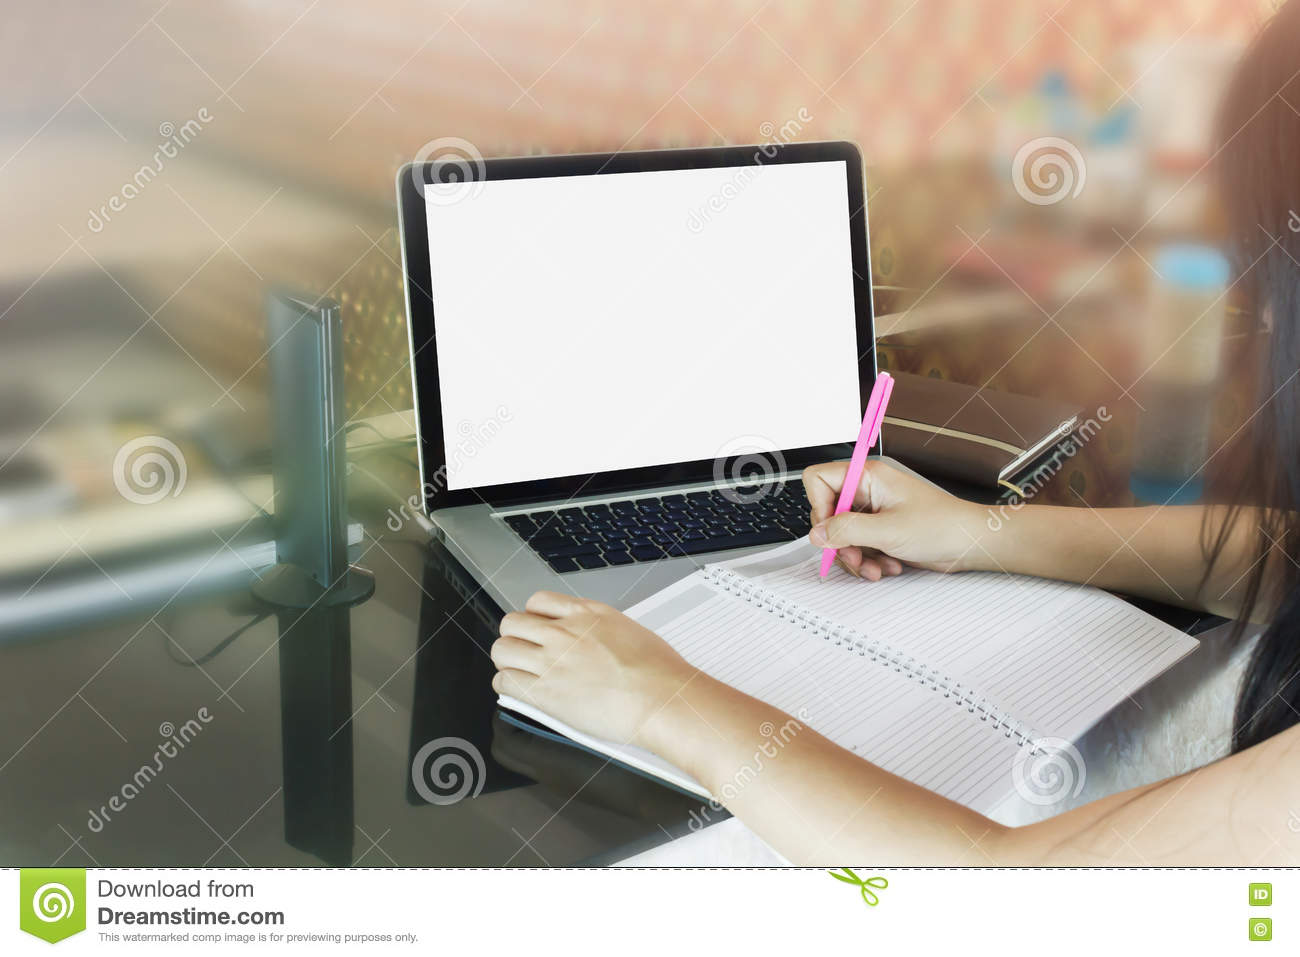 Women or girl writing down on blank note book or making memo on